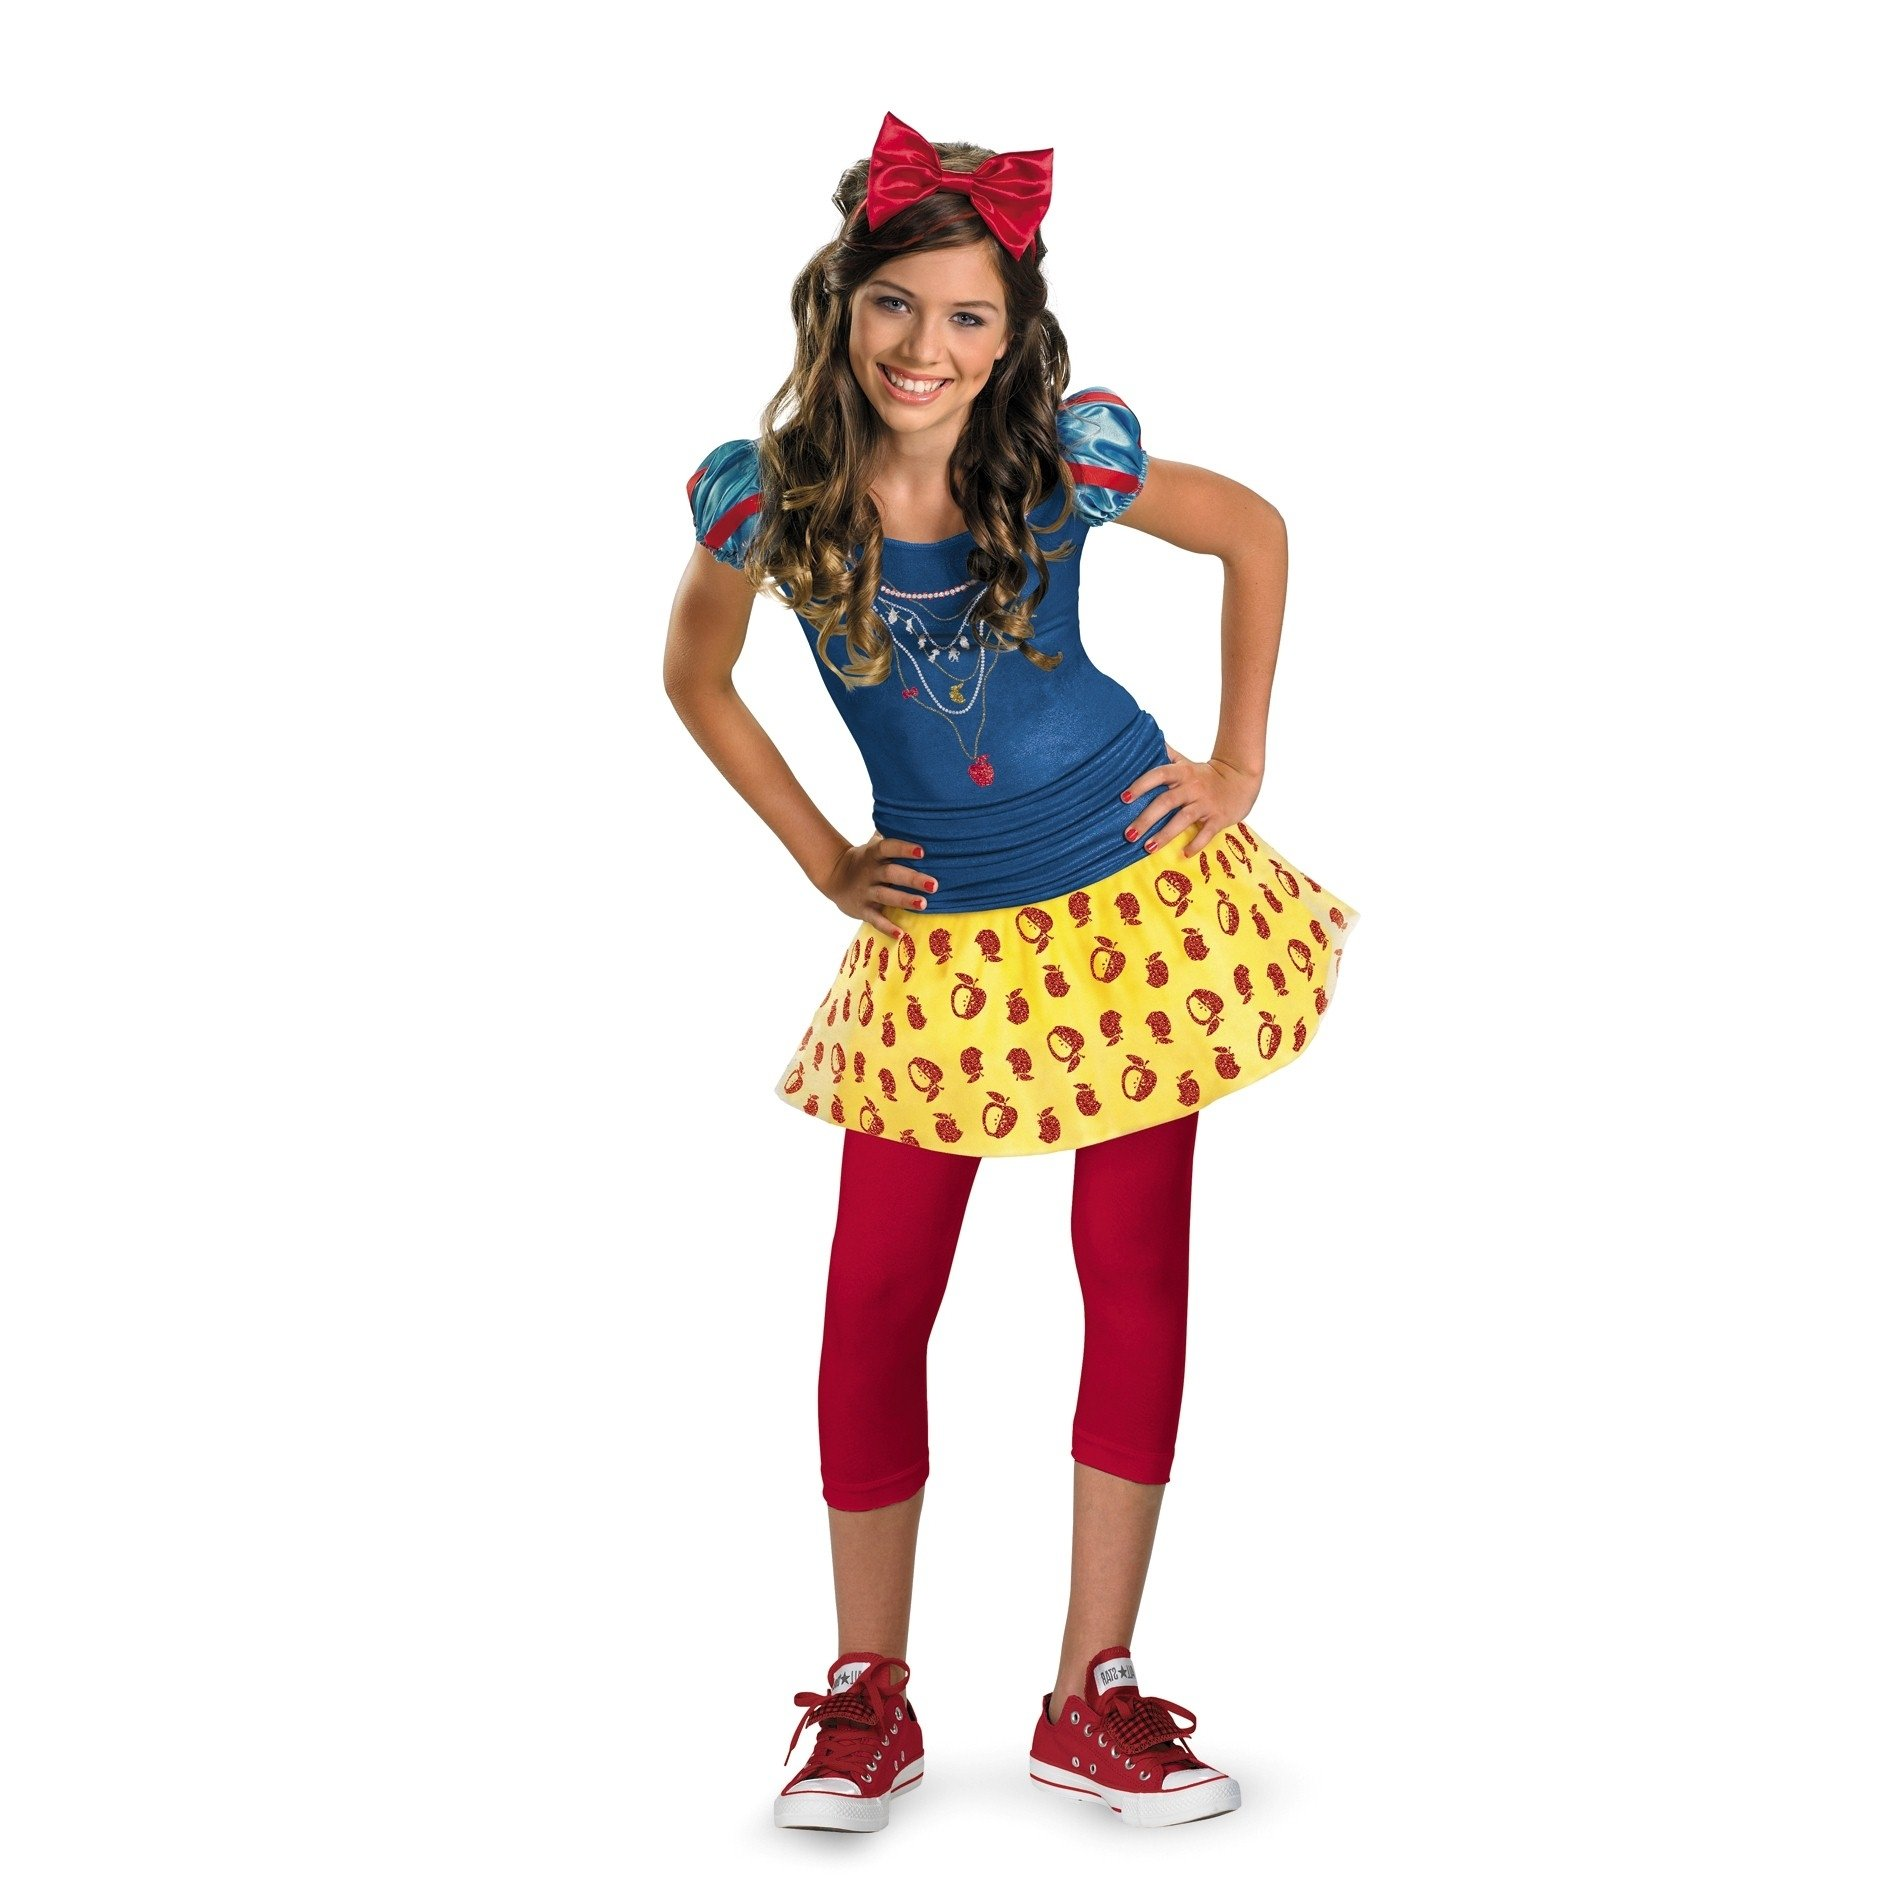 60 halloween costumes for tweens ideas, tween shake it up cece